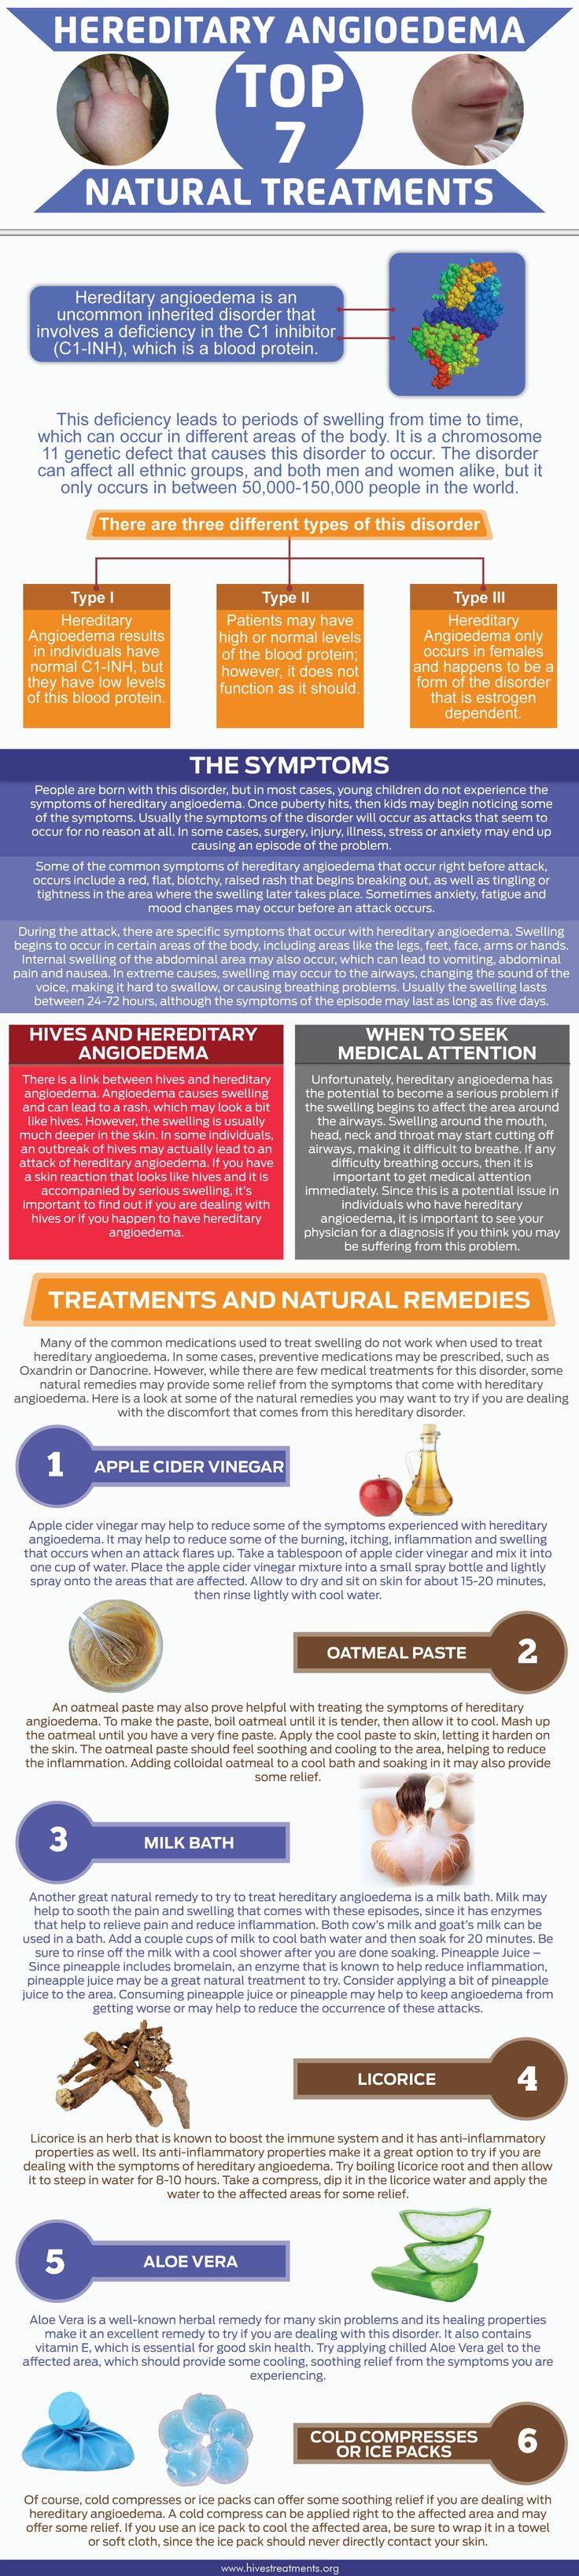 I don't use any of these home remedies, I tried some but they don't work for me, but they may help other people with hereditary and acquired, idiopathic angioedema.